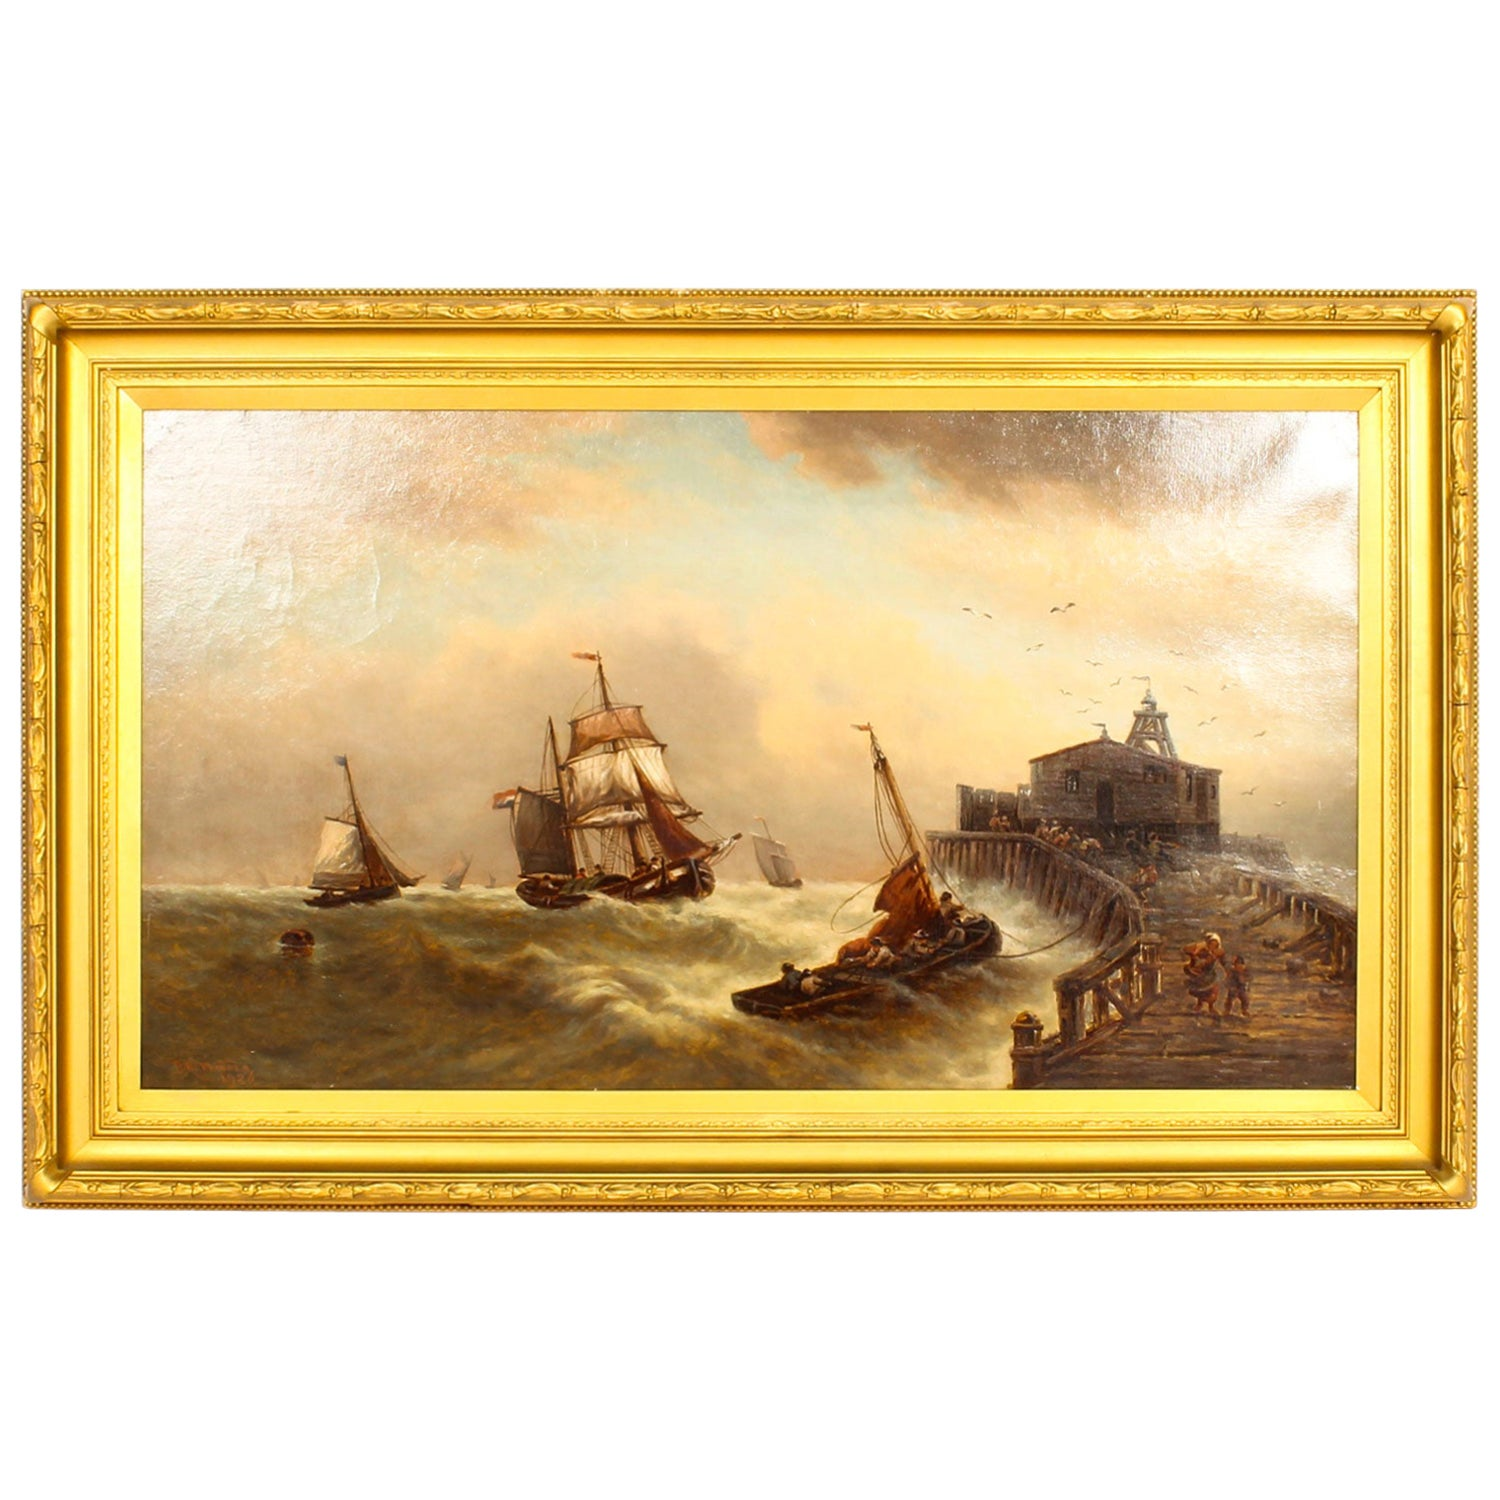 Antique Stormy Seascape Painting by David Horatio Winder, 1926